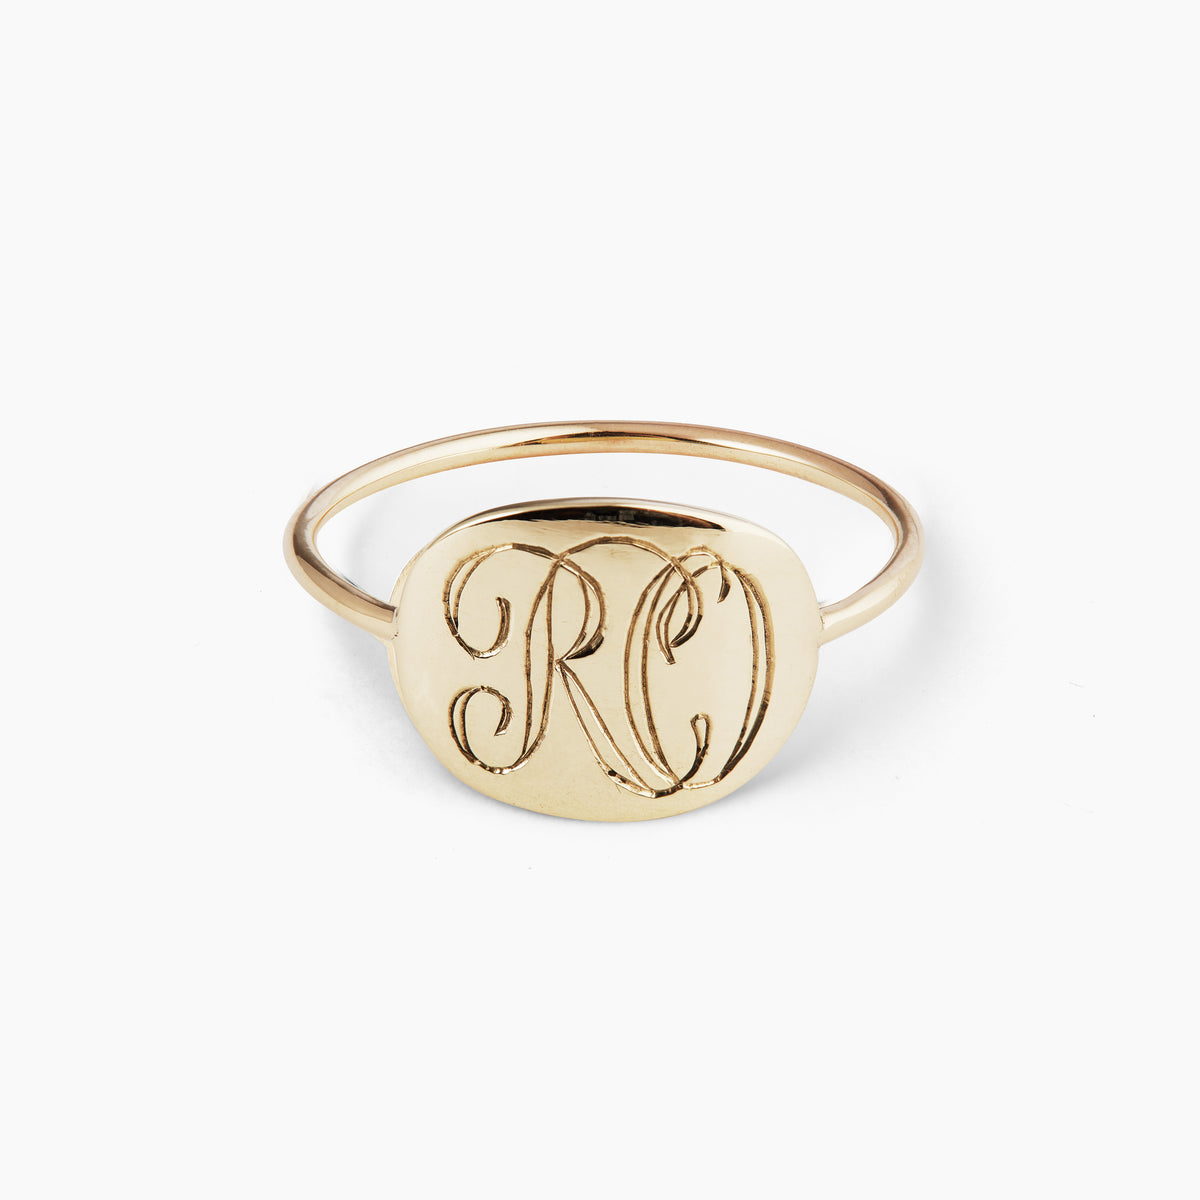 Solid Gold Ring. Complementary Hand Engraving.